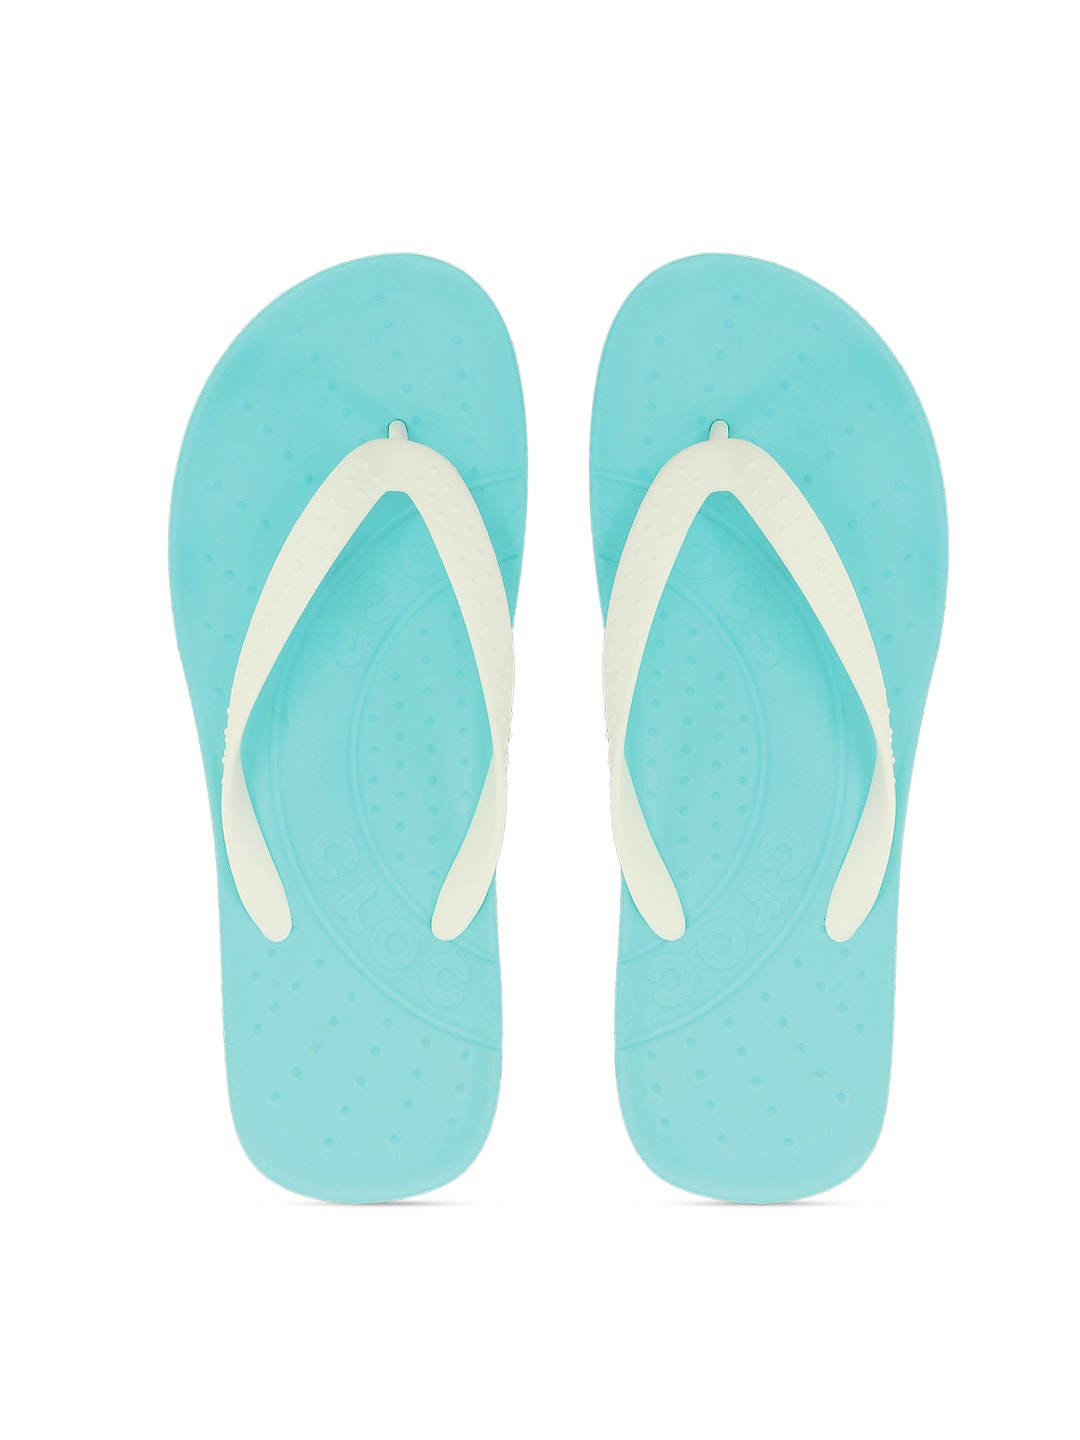 84dd01f30b98 Crocs 15963-1ai Men Blue And White Sandals - Best Price in India ...